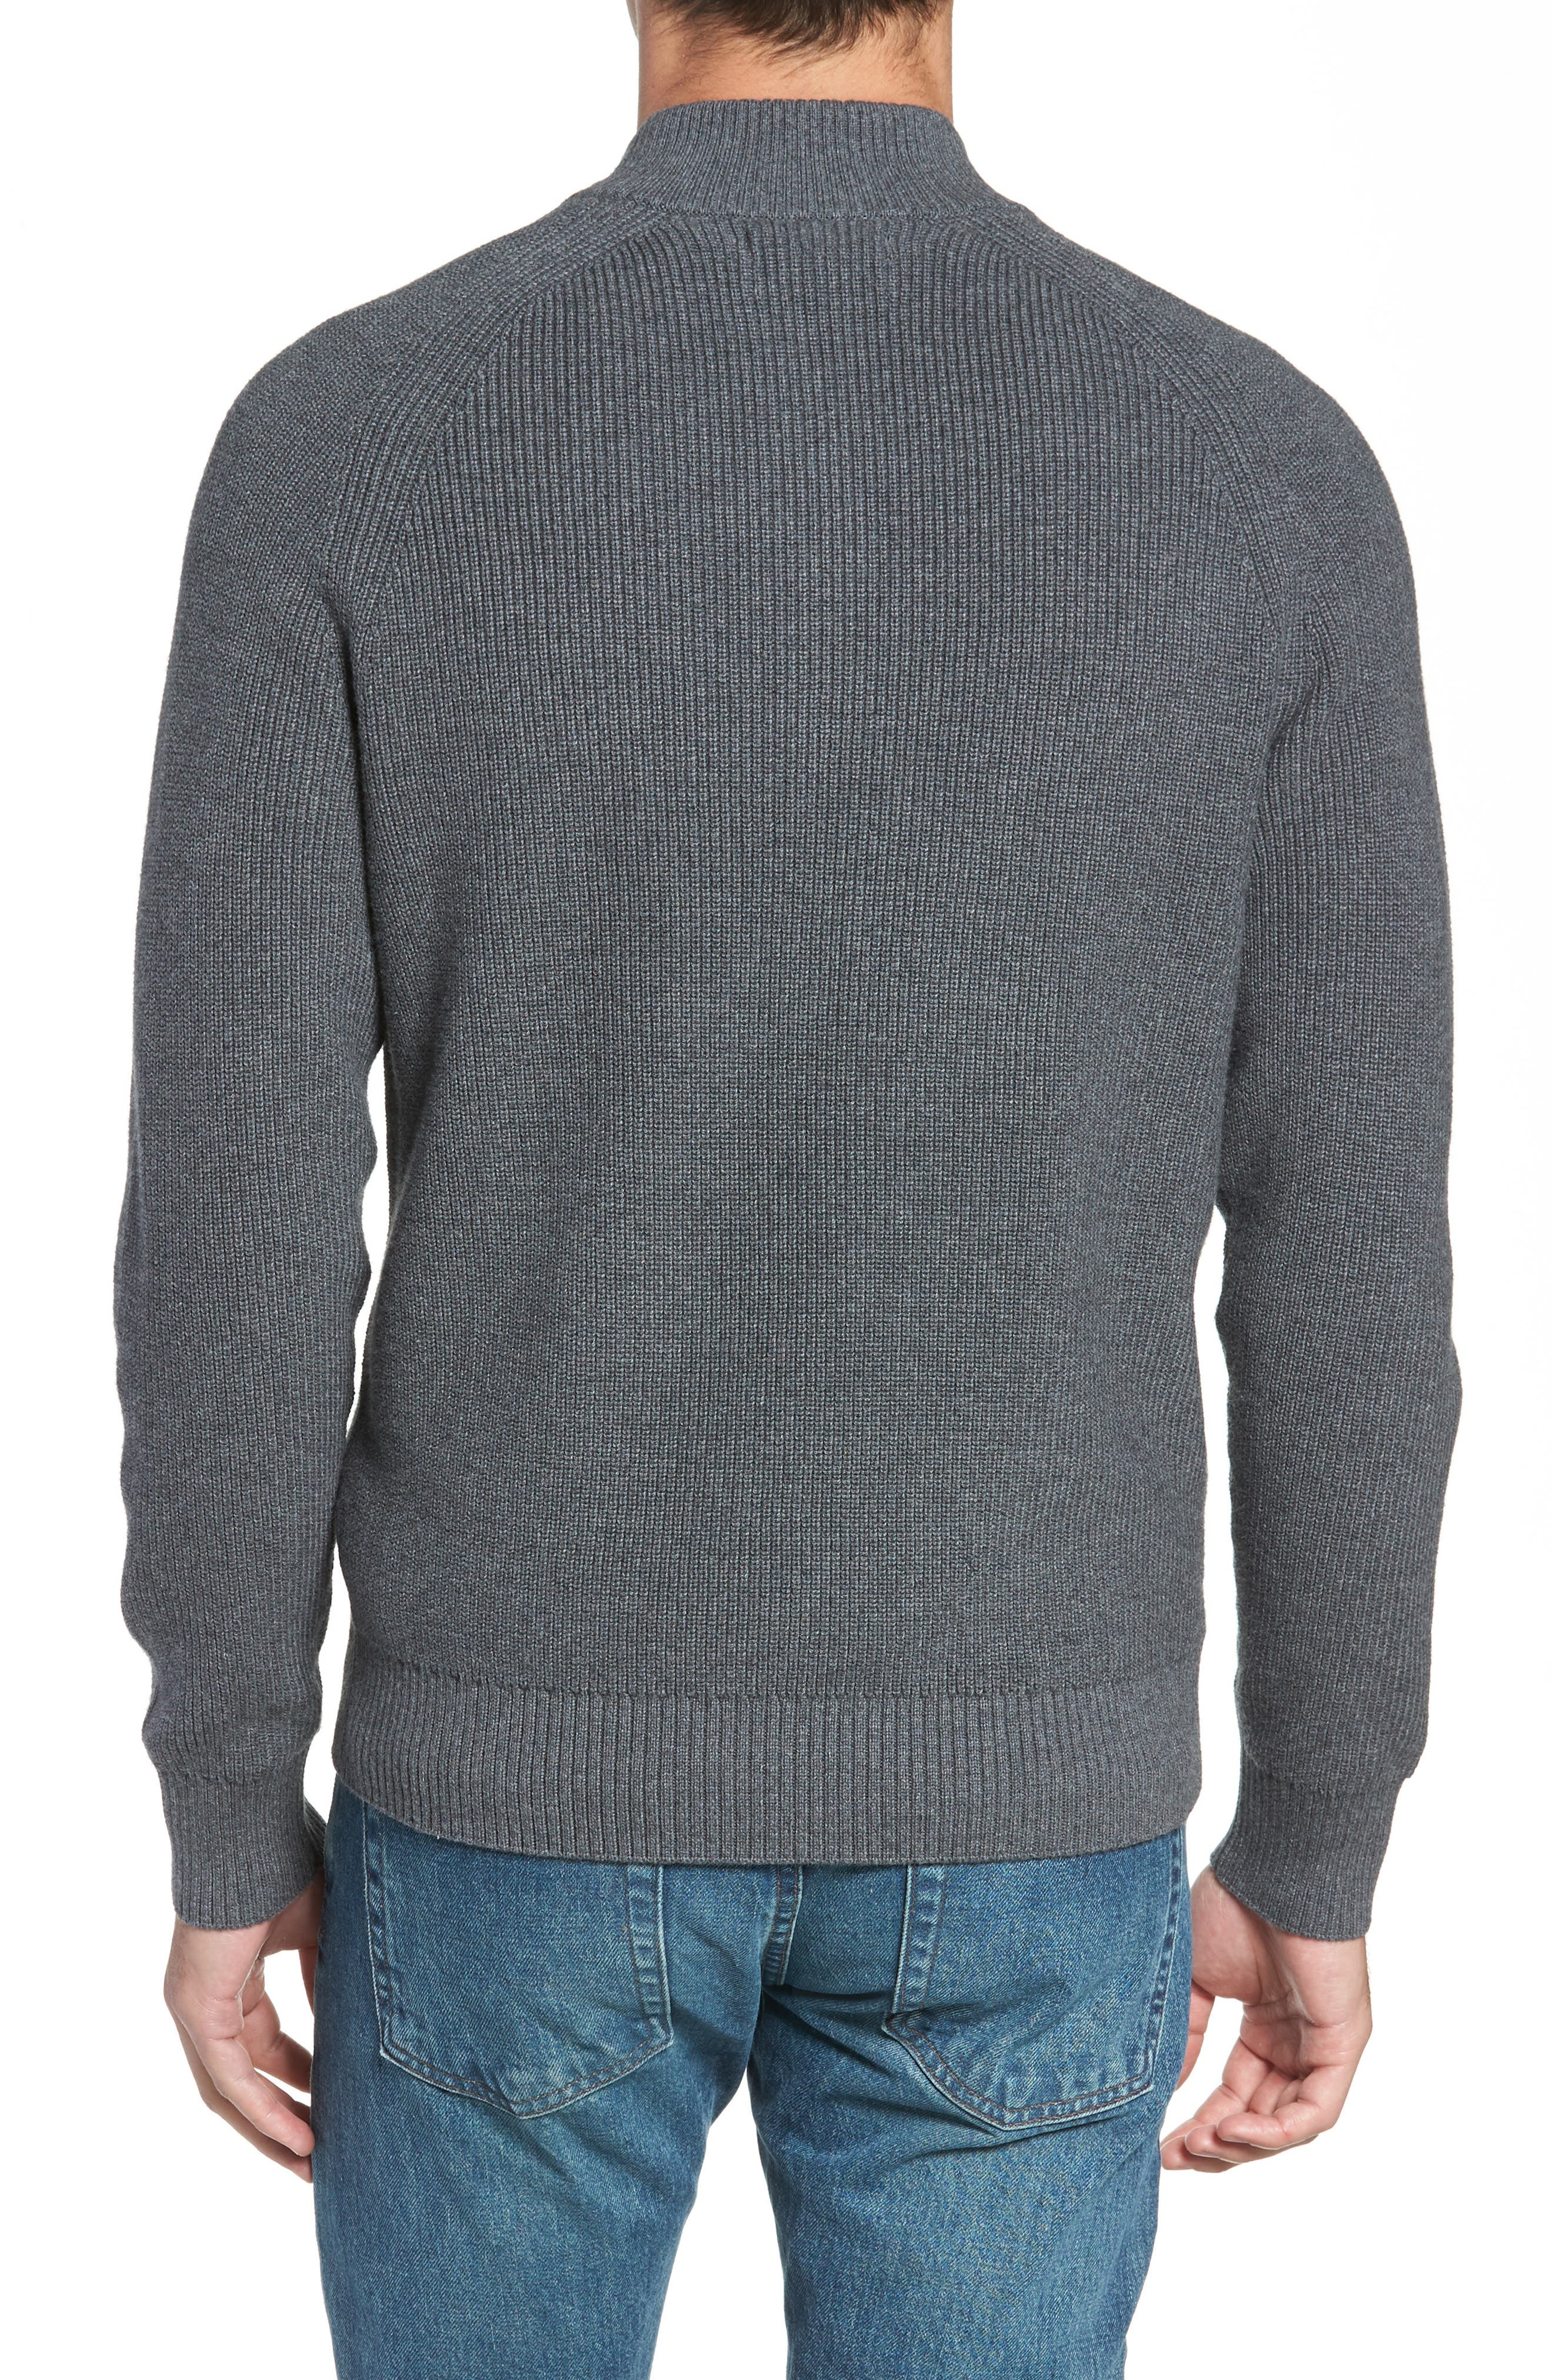 Ribbed Quarter Zip Sweater,                             Alternate thumbnail 2, color,                             GREY CASTLEROCK